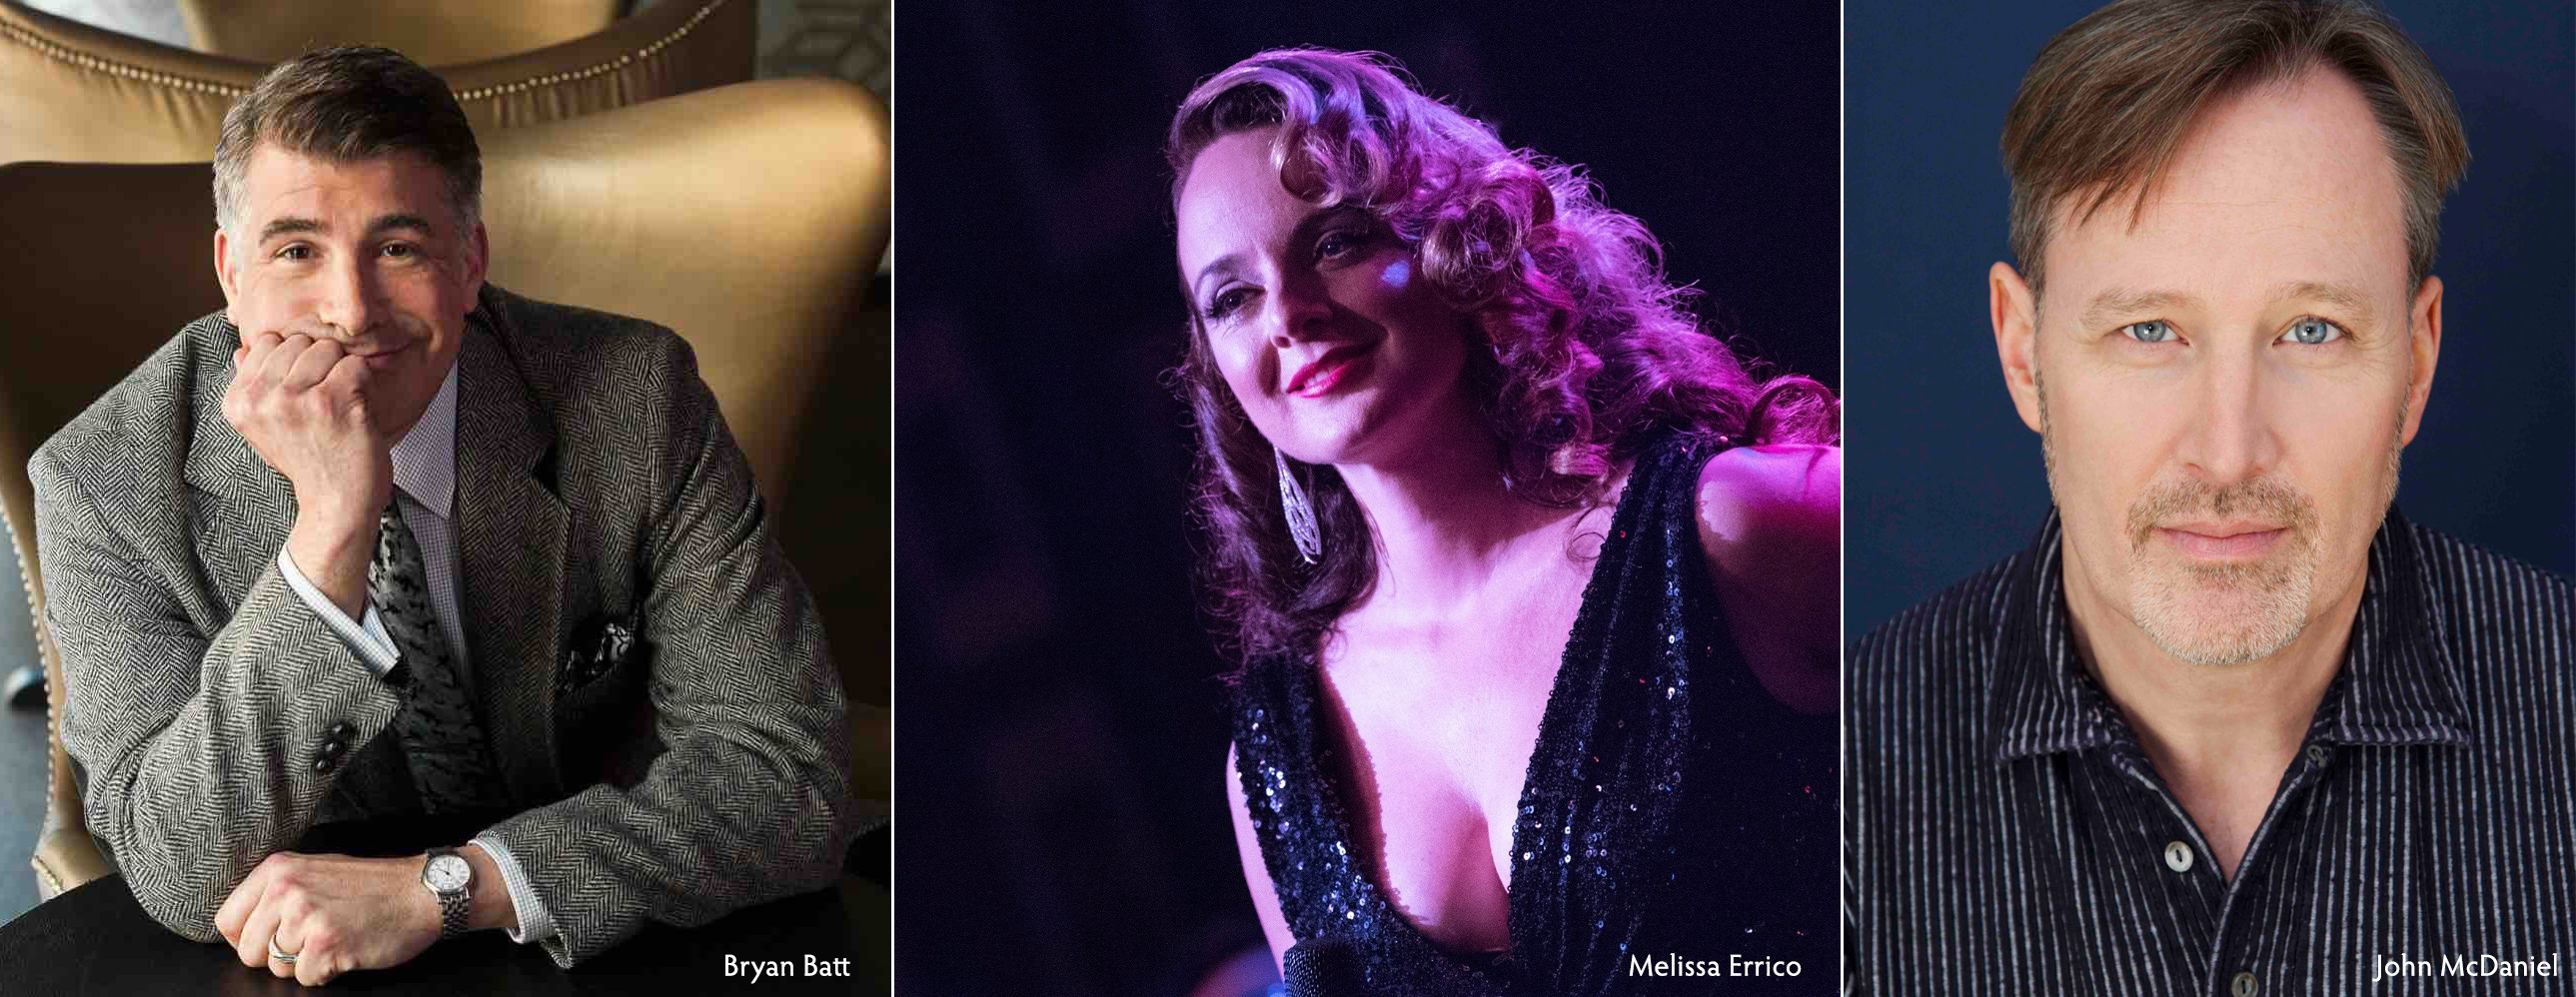 Tony Award nominee Melissa Errico and Bryan Batt come to NOCCA on March 1